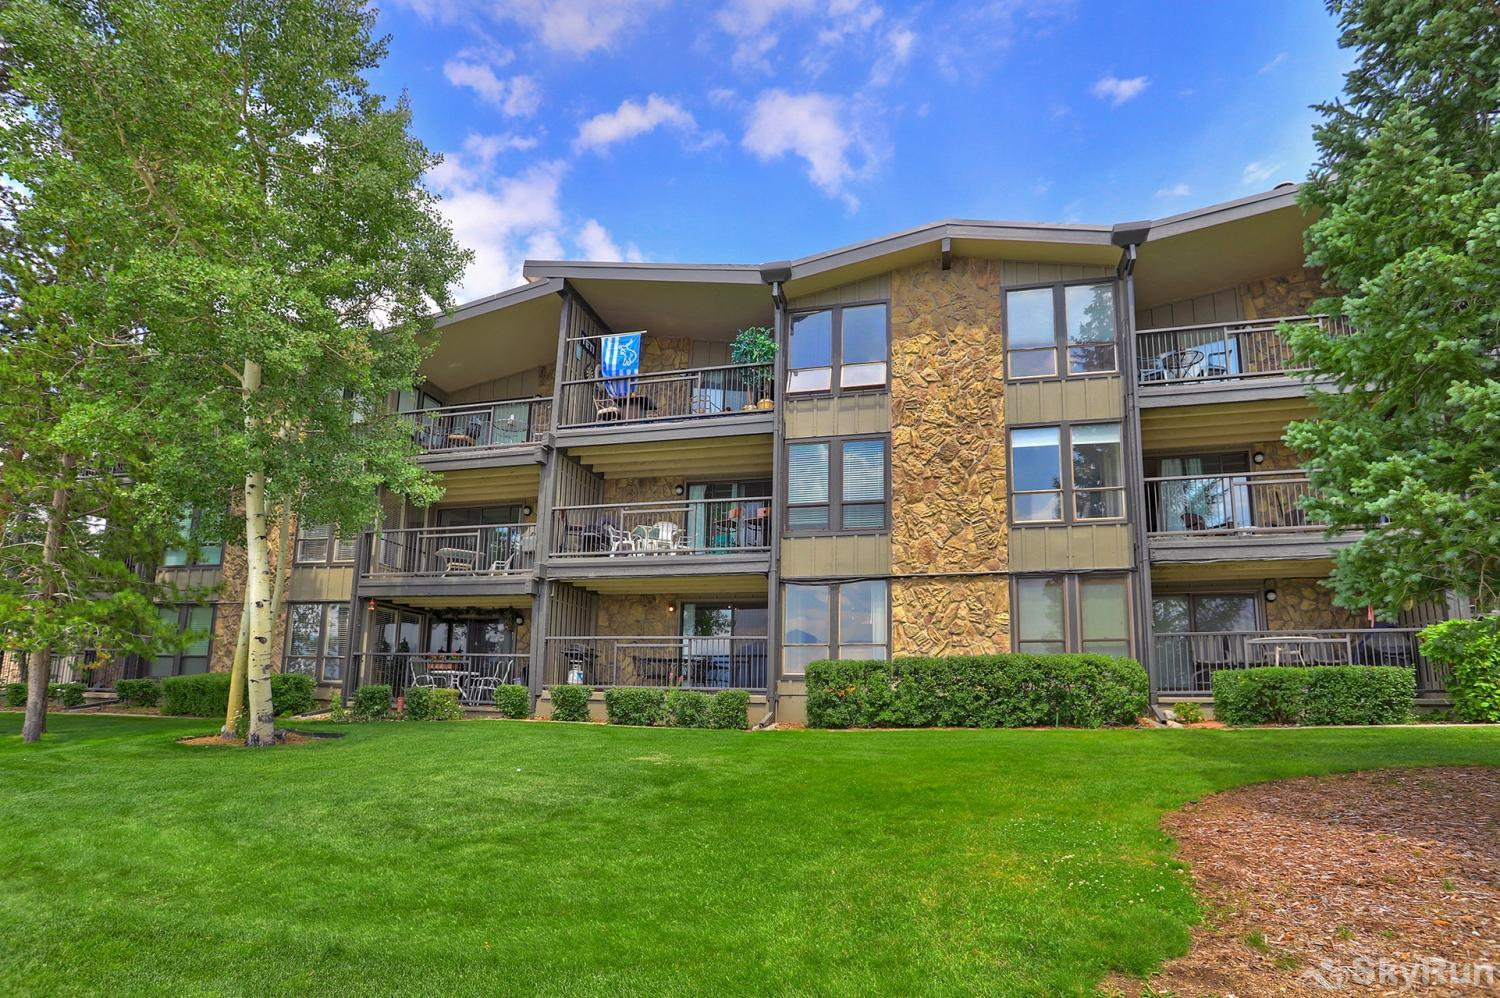 F108 Lake Cliffe Condos